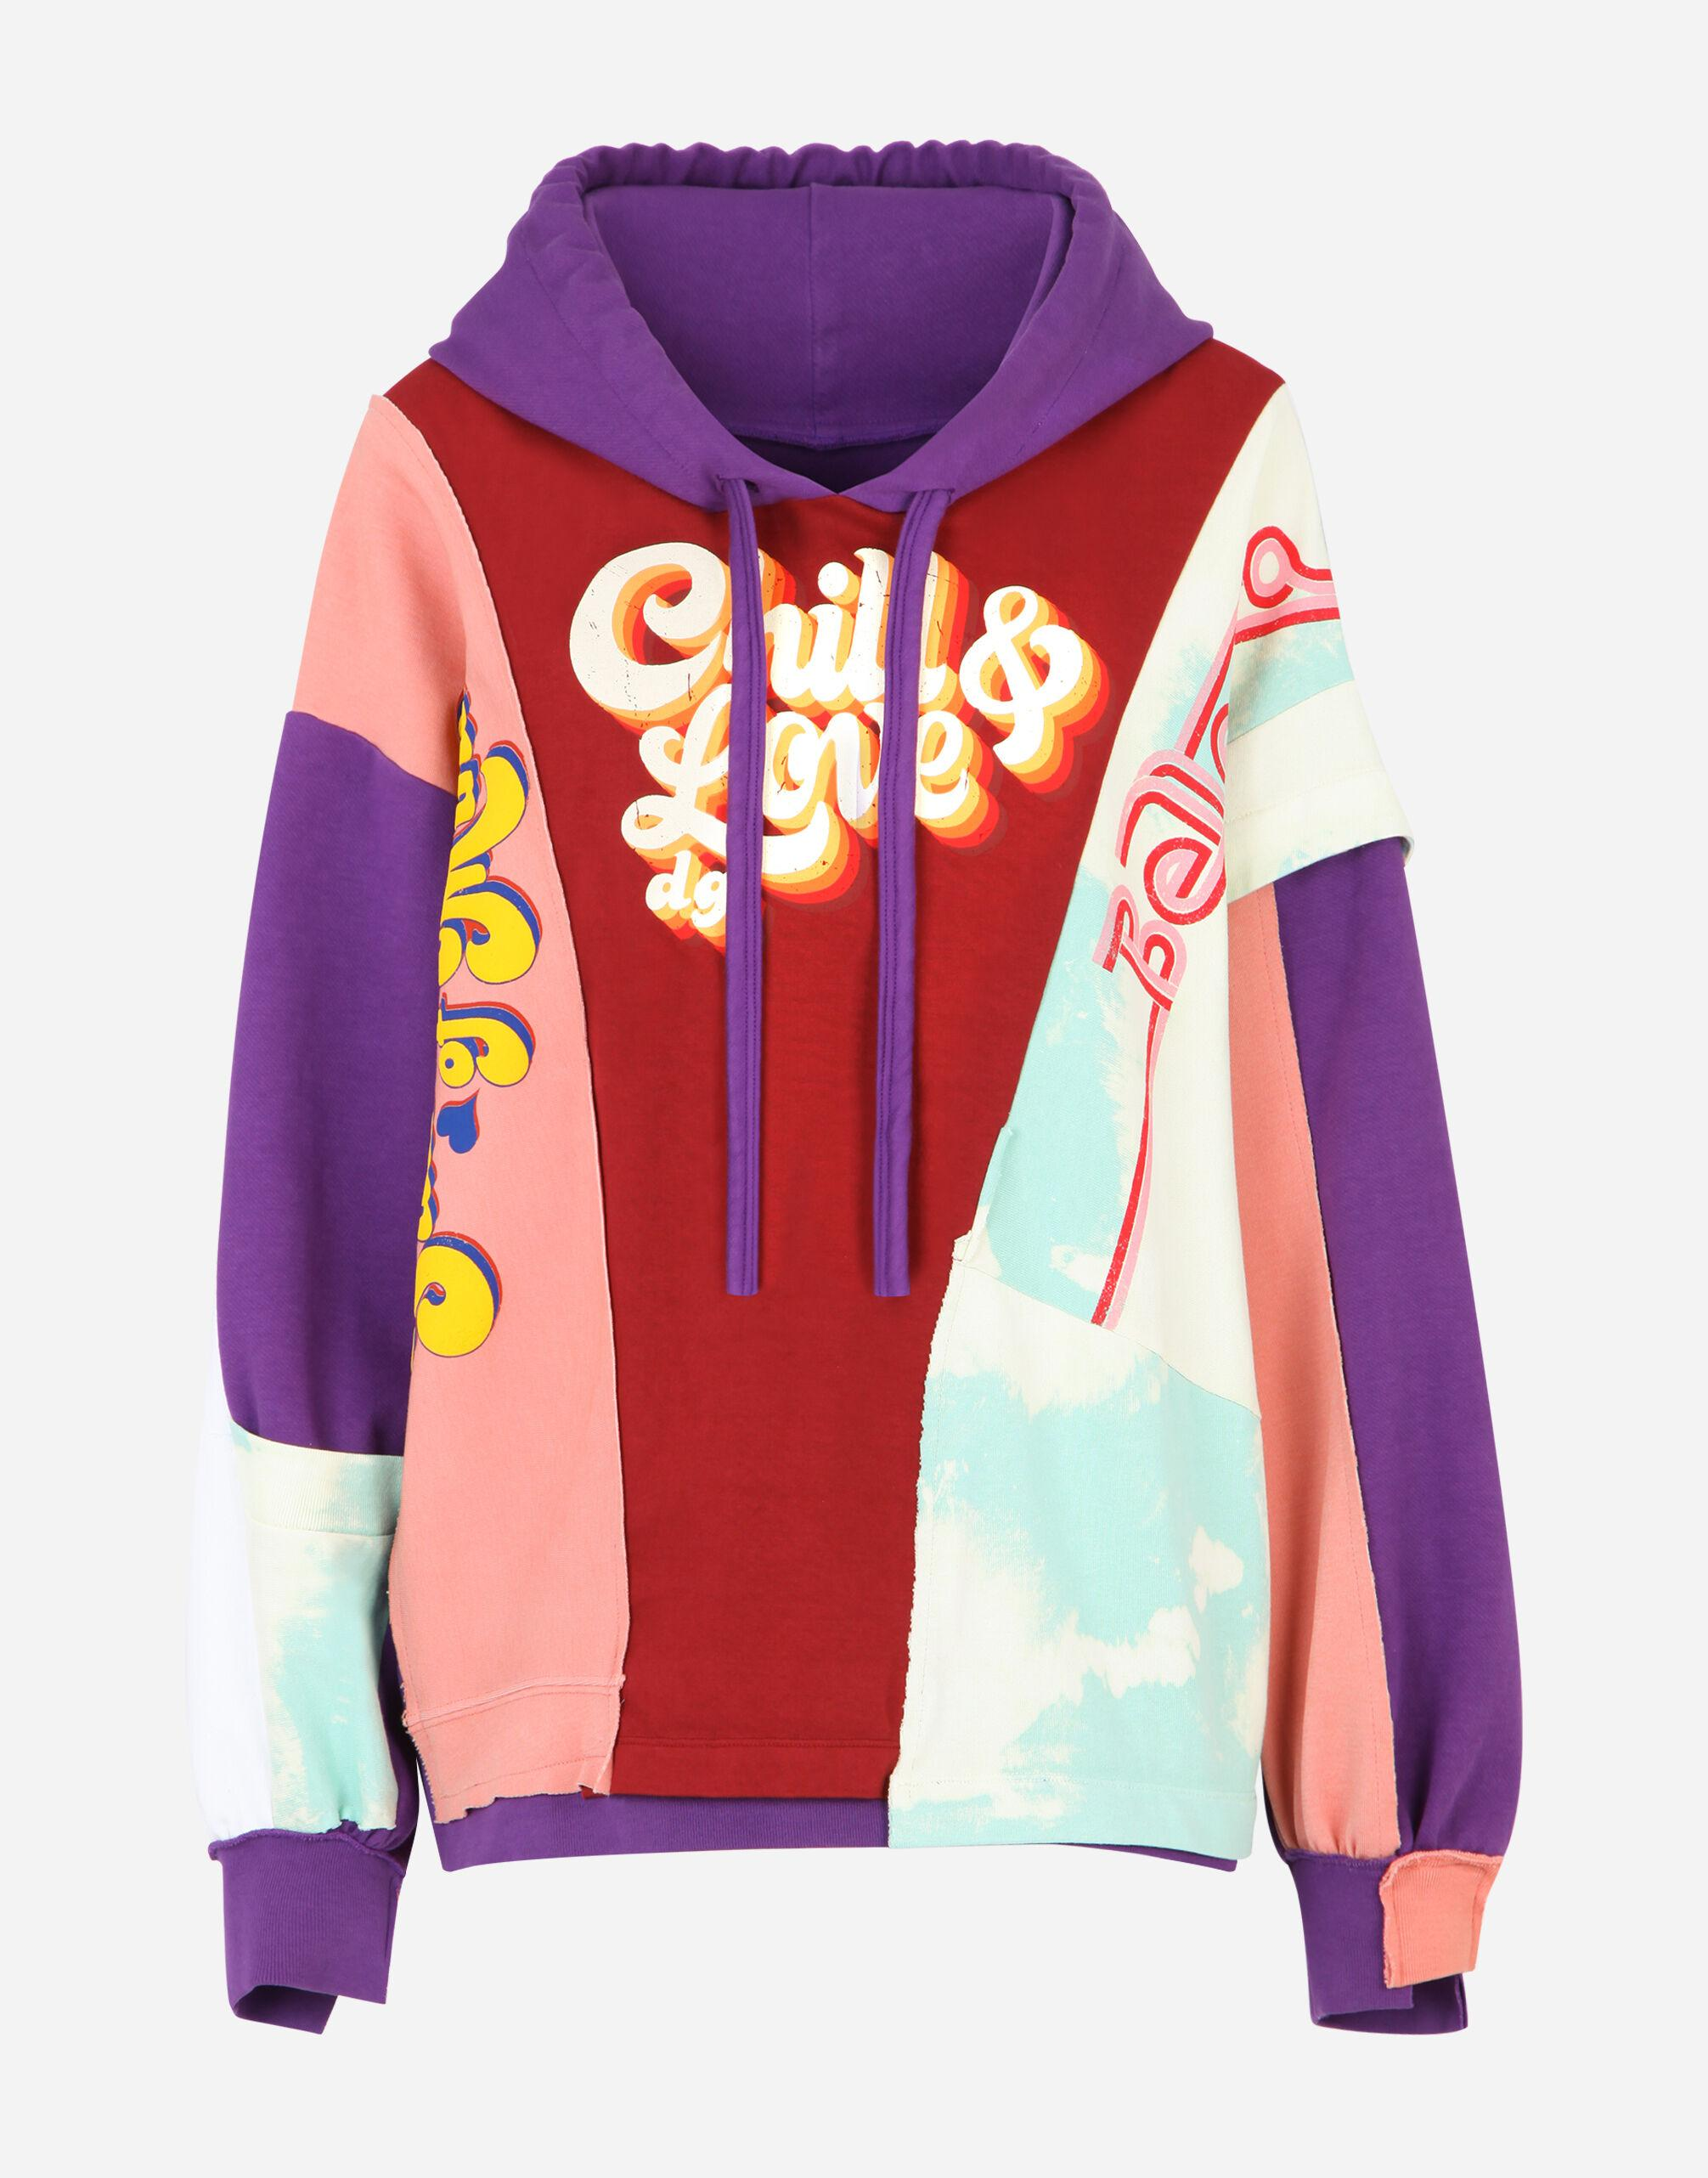 Patchwork jersey hoodie with chill & love DG print 3